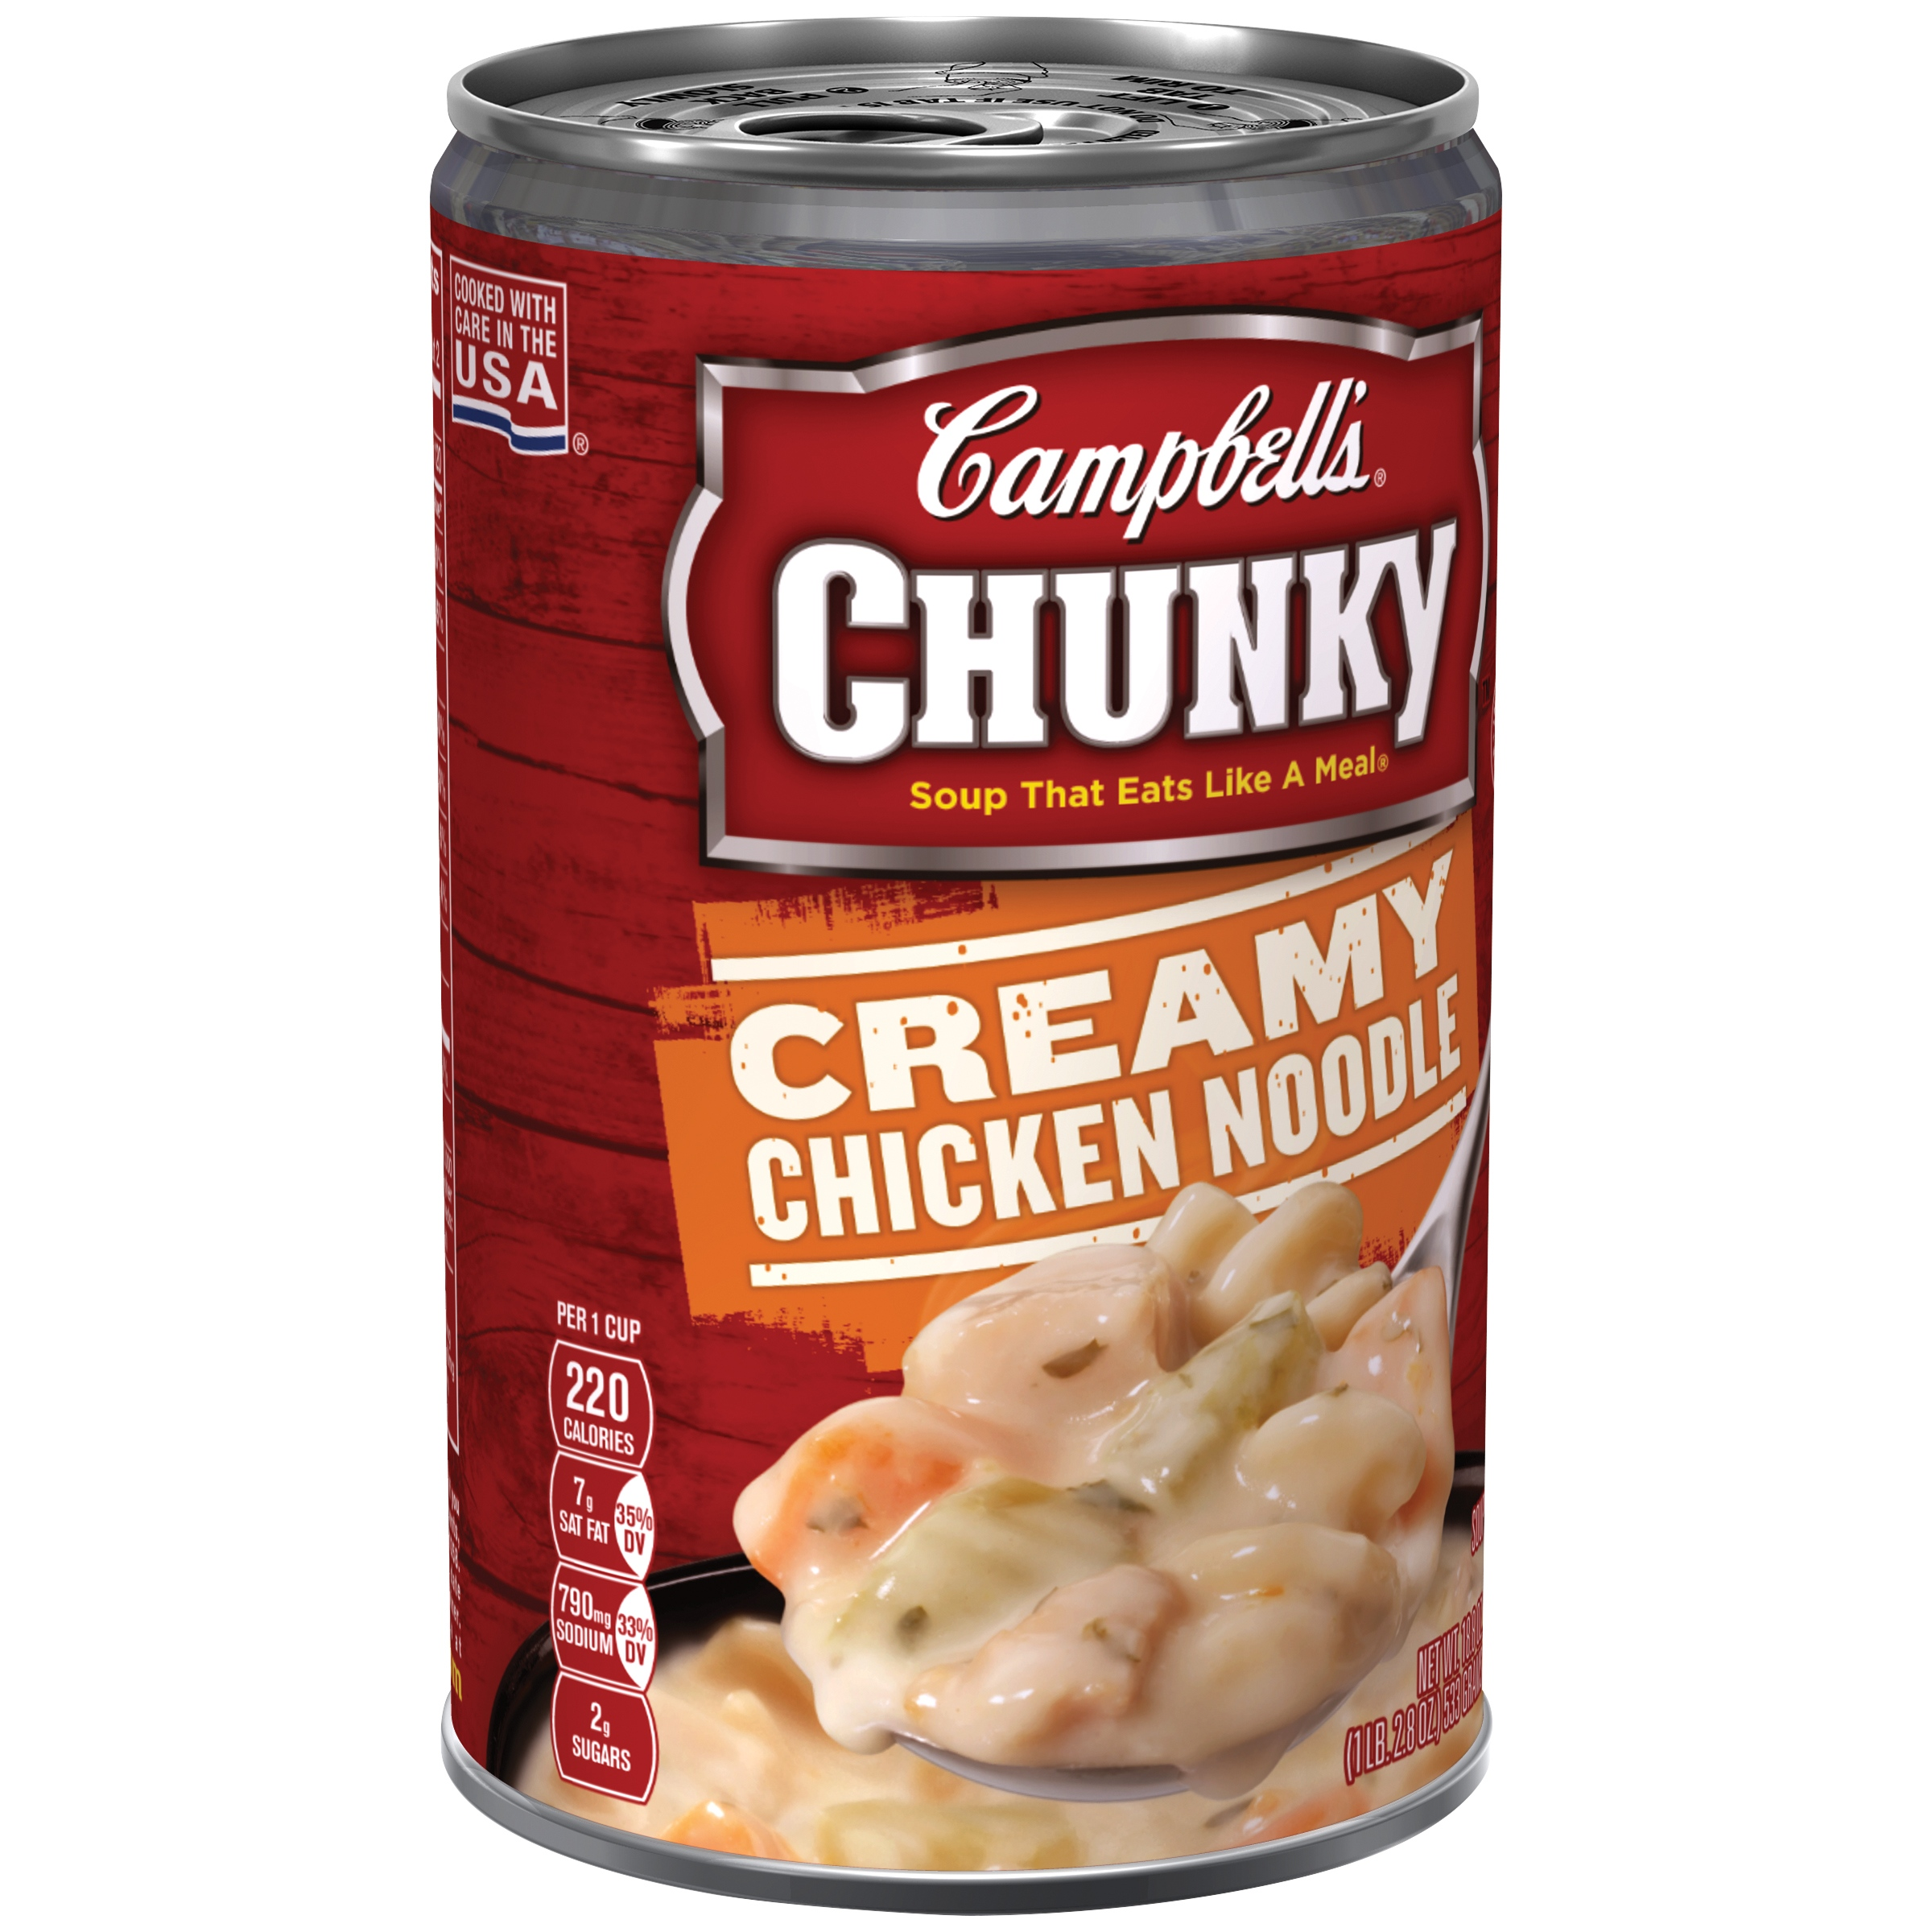 Campbell's Chunky Creamy Chicken Noodle Soup, 18.8 oz by Campbell Soup Company